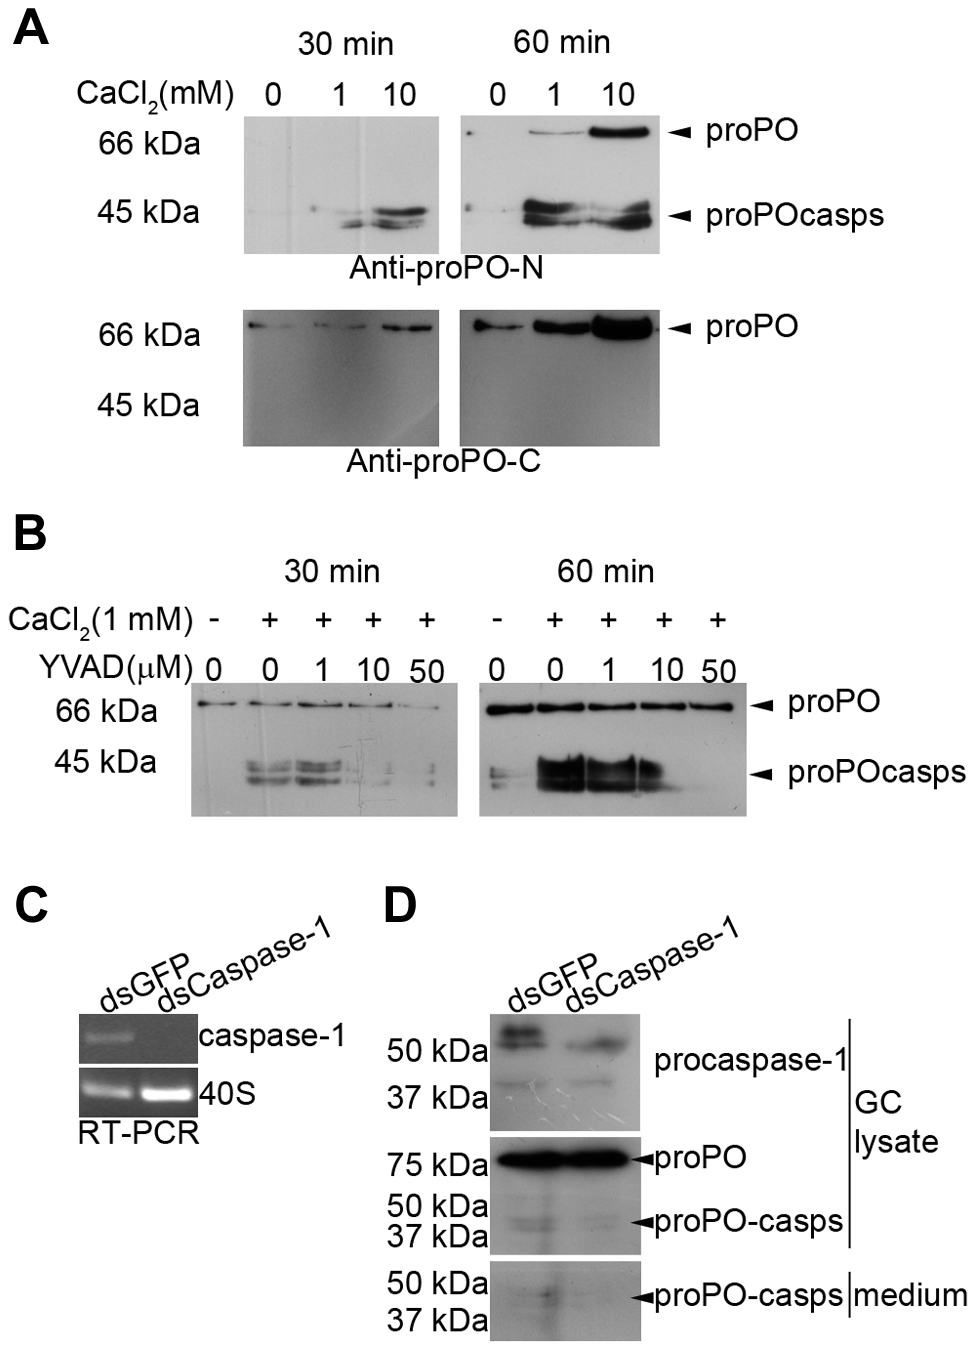 Ca<sup>2+</sup> dependence of proPO-casp release and the inhibitory effect of a caspase-1 inhibitor and caspase-1 knockdown <i>in vitro</i>.